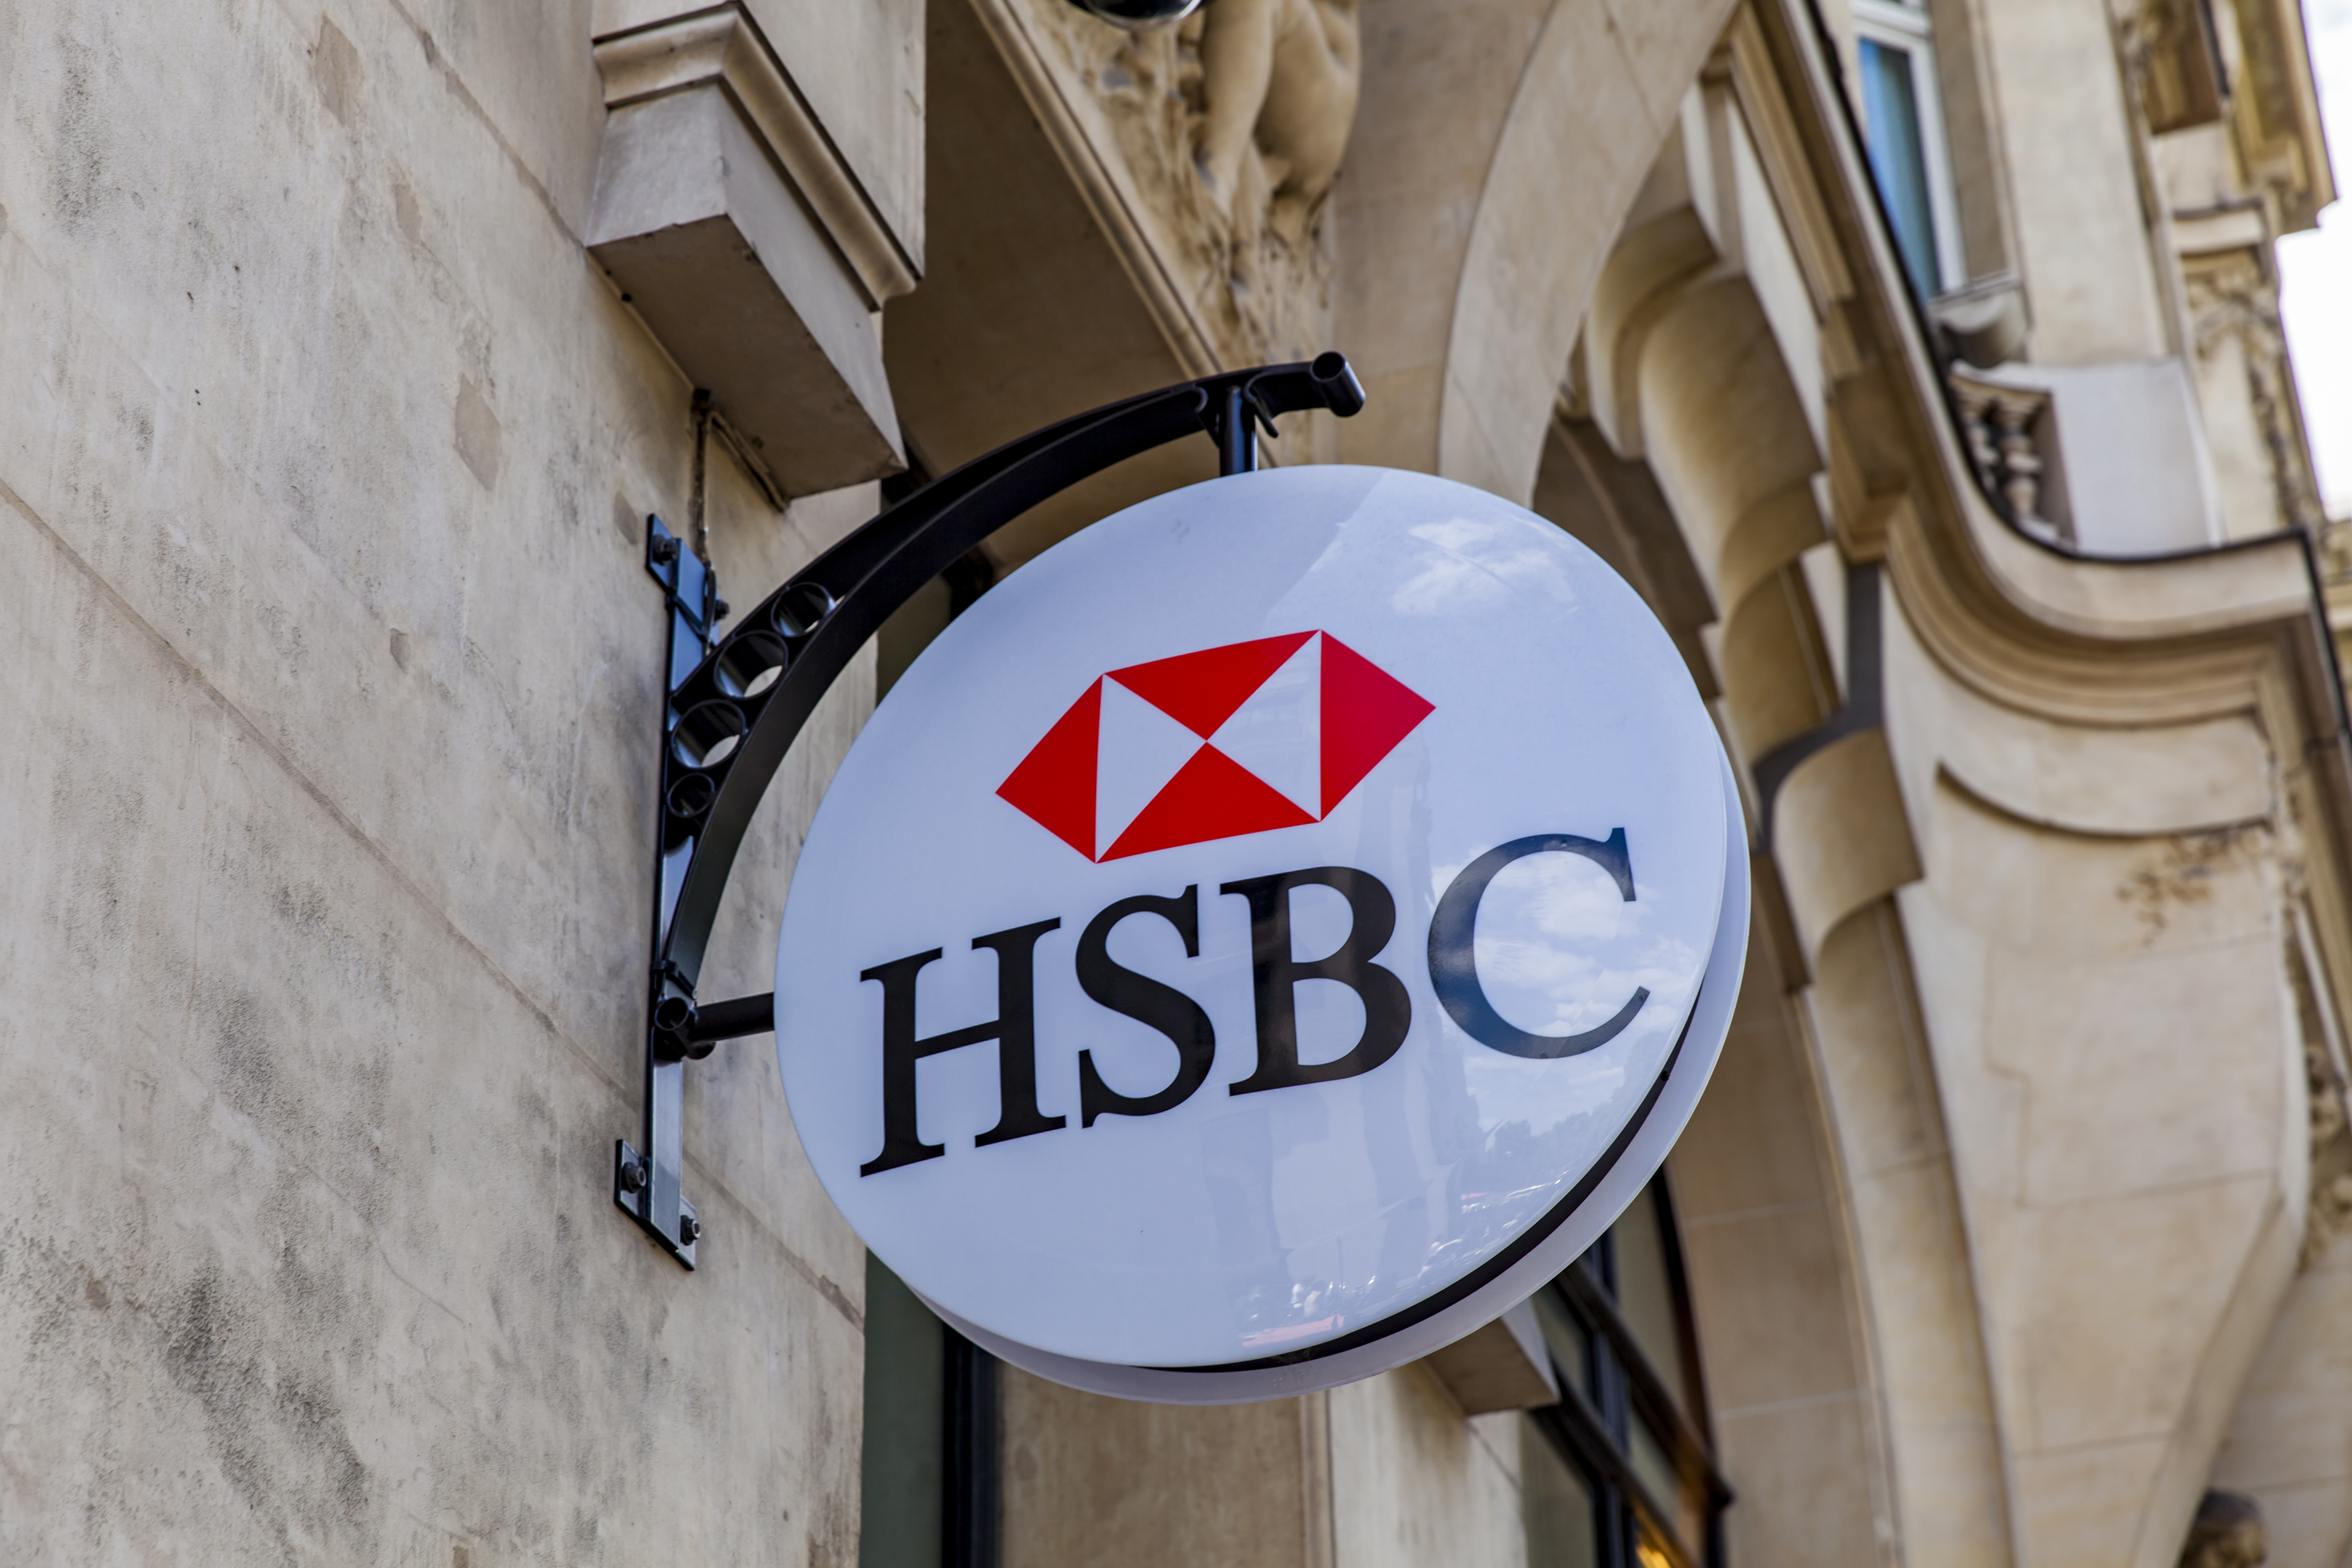 JLL IN HSBC CONTRACT EXTENSION